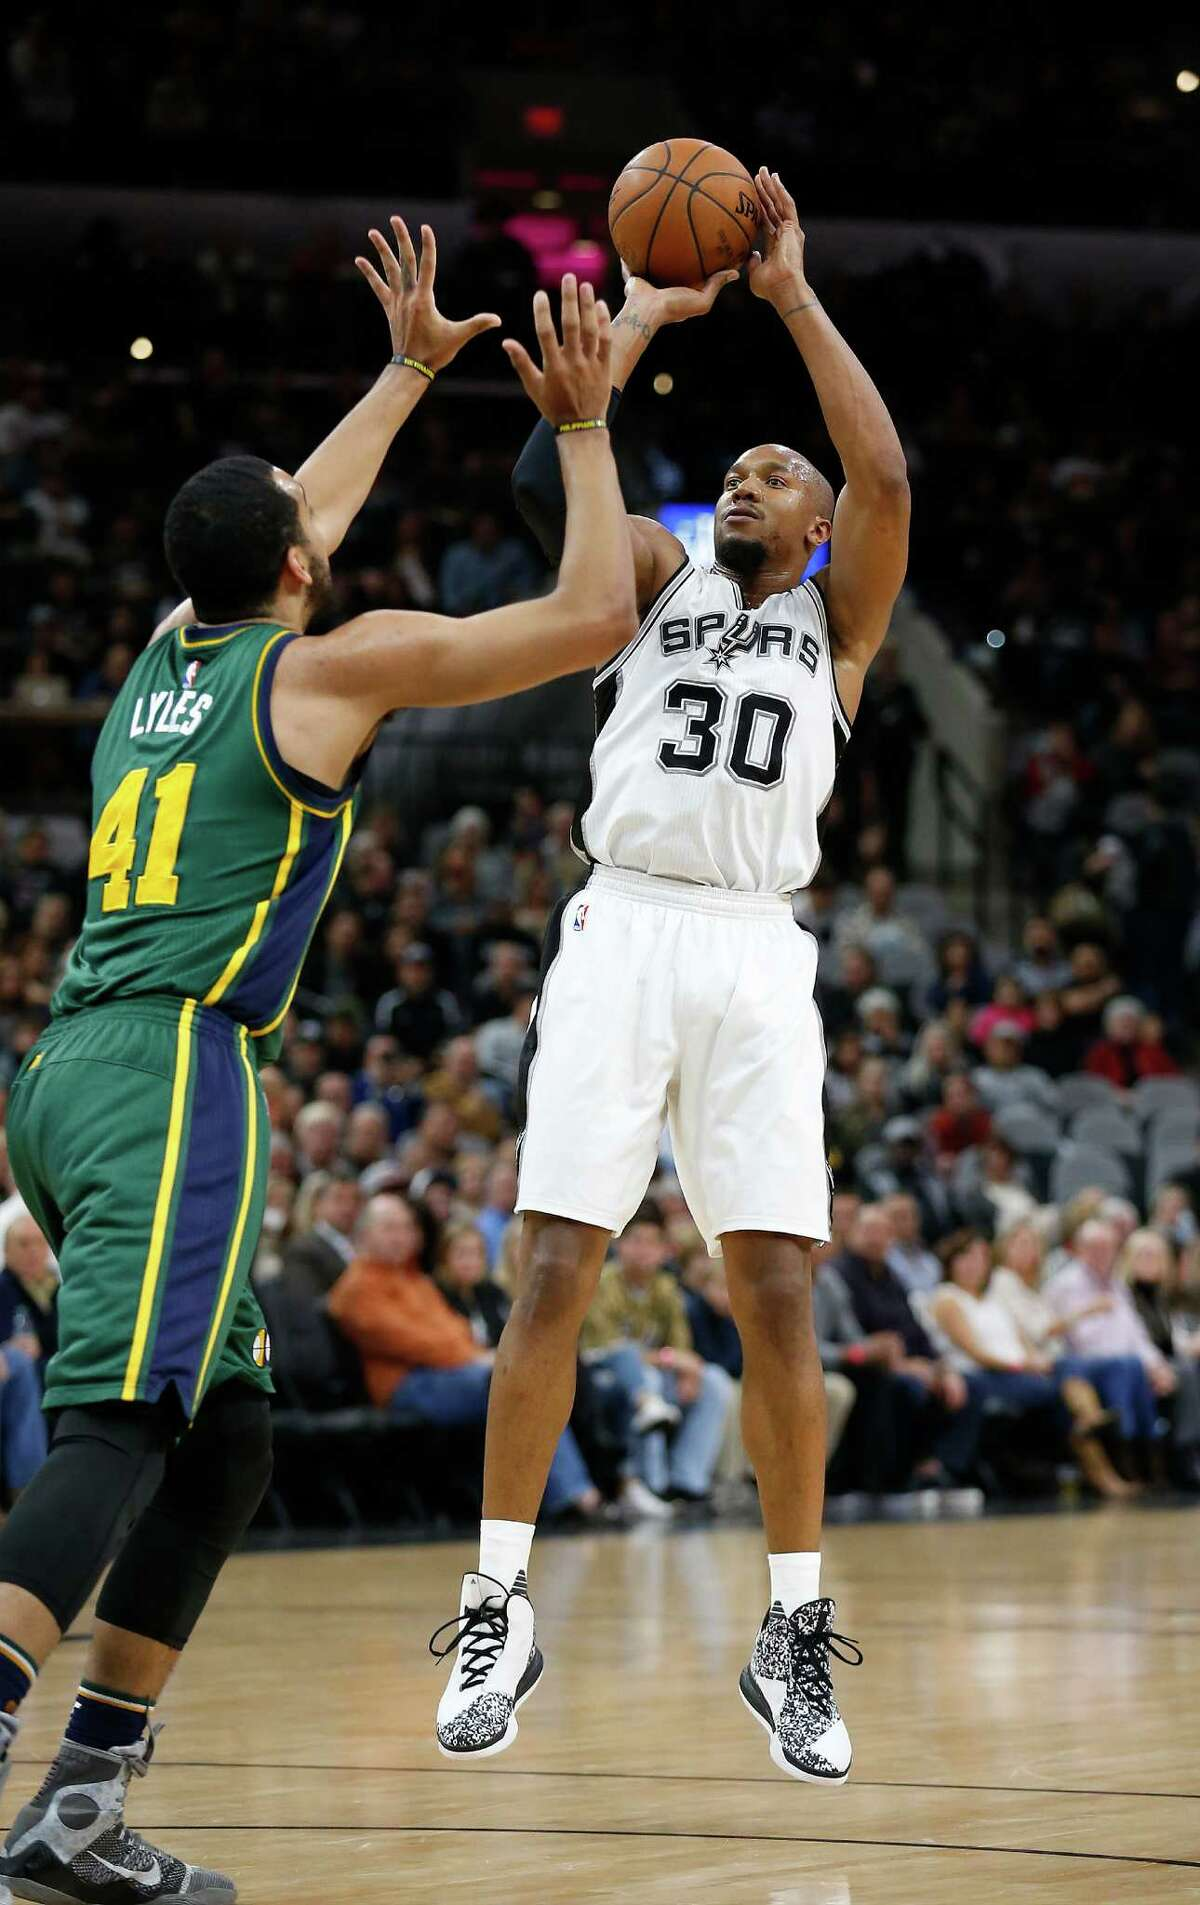 Spurs' David West (30) shoots against Utah Jazz's Trey Lyles (41) on Wednesday, Jan. 6, 2016. (Kin Man Hui/San Antonio Express-News)